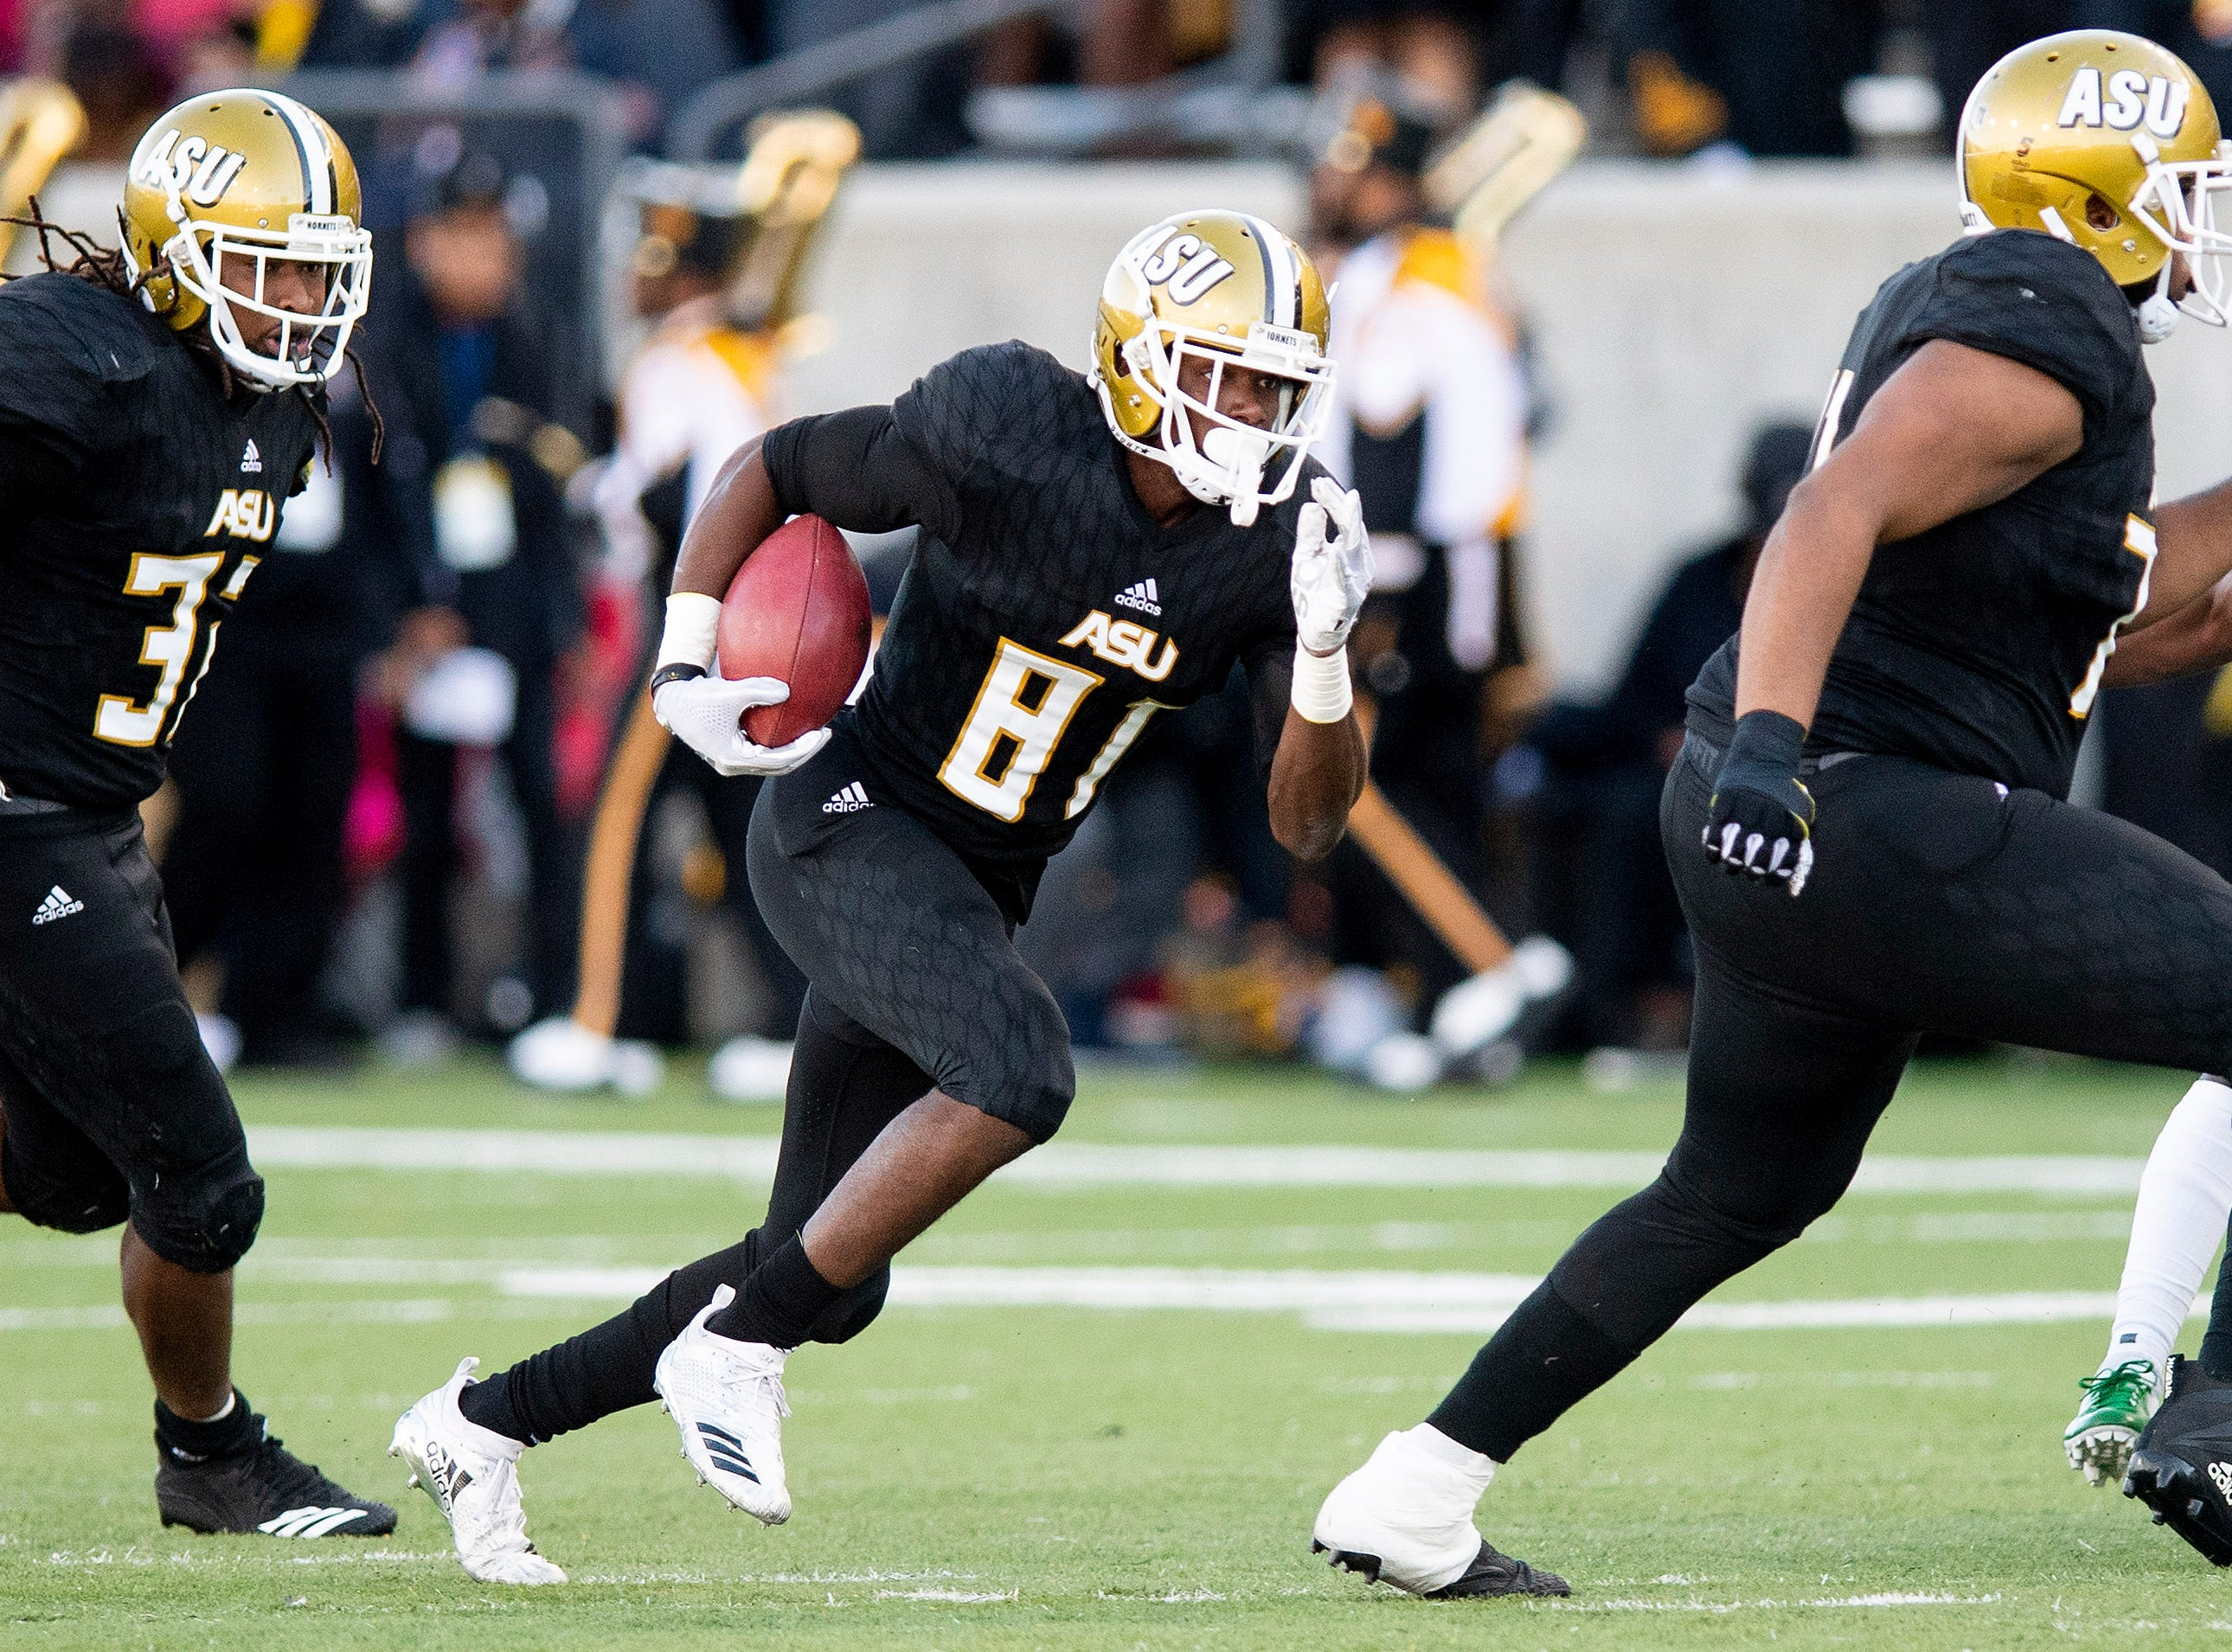 Alabama State University wide receiver Marquez Spencer (81) carries the ball against Mississippi Valley State in first half action of the Turkey Day Classic at Hornet Stadium on the ASU campus in Montgomery, Ala., on Thanksgiving Day, Thursday November 22, 2018.